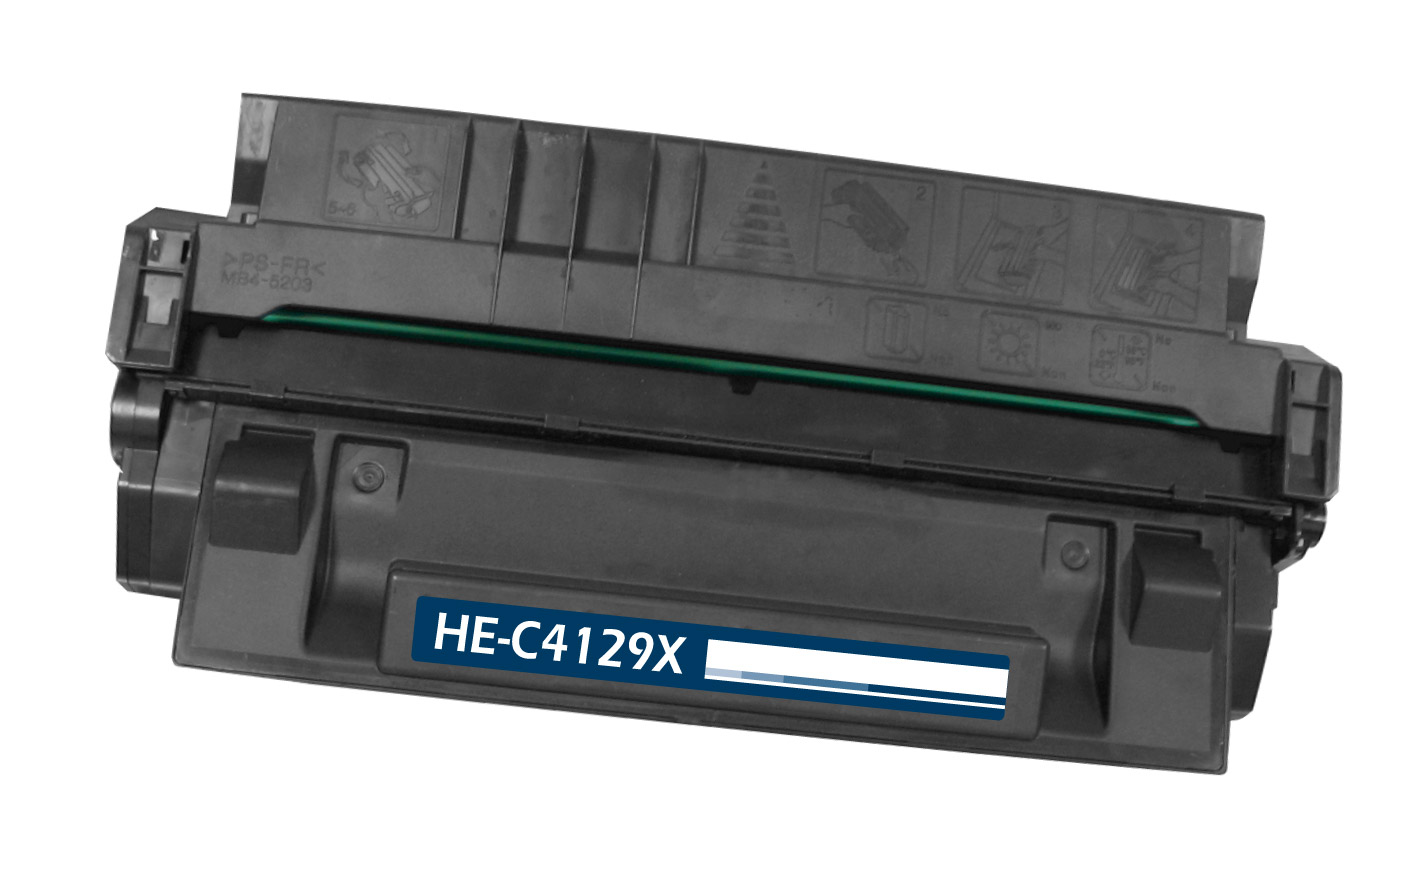 HP C4129X printer cartridge